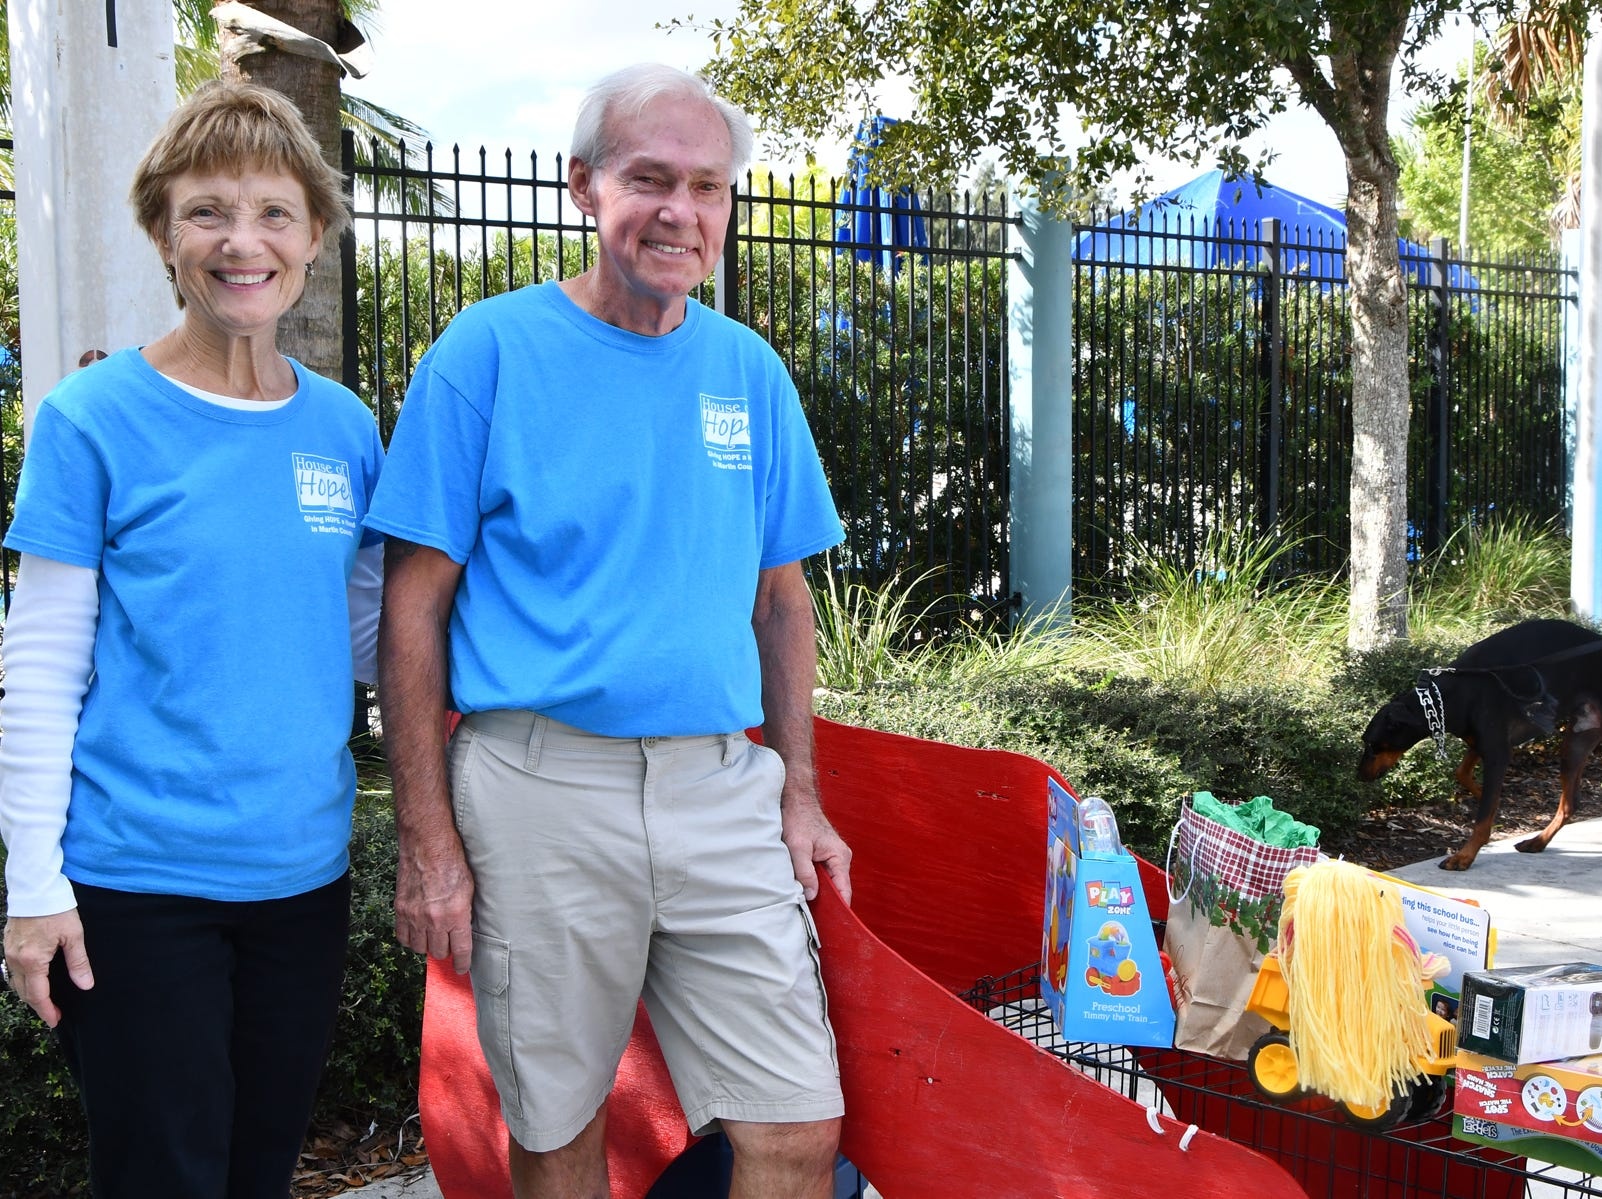 House of Hope volunteers Karl and Diane Lehtola collected unwrapped toys for needy children at the Pooch Plunge at Sailfish Splash Waterpark.